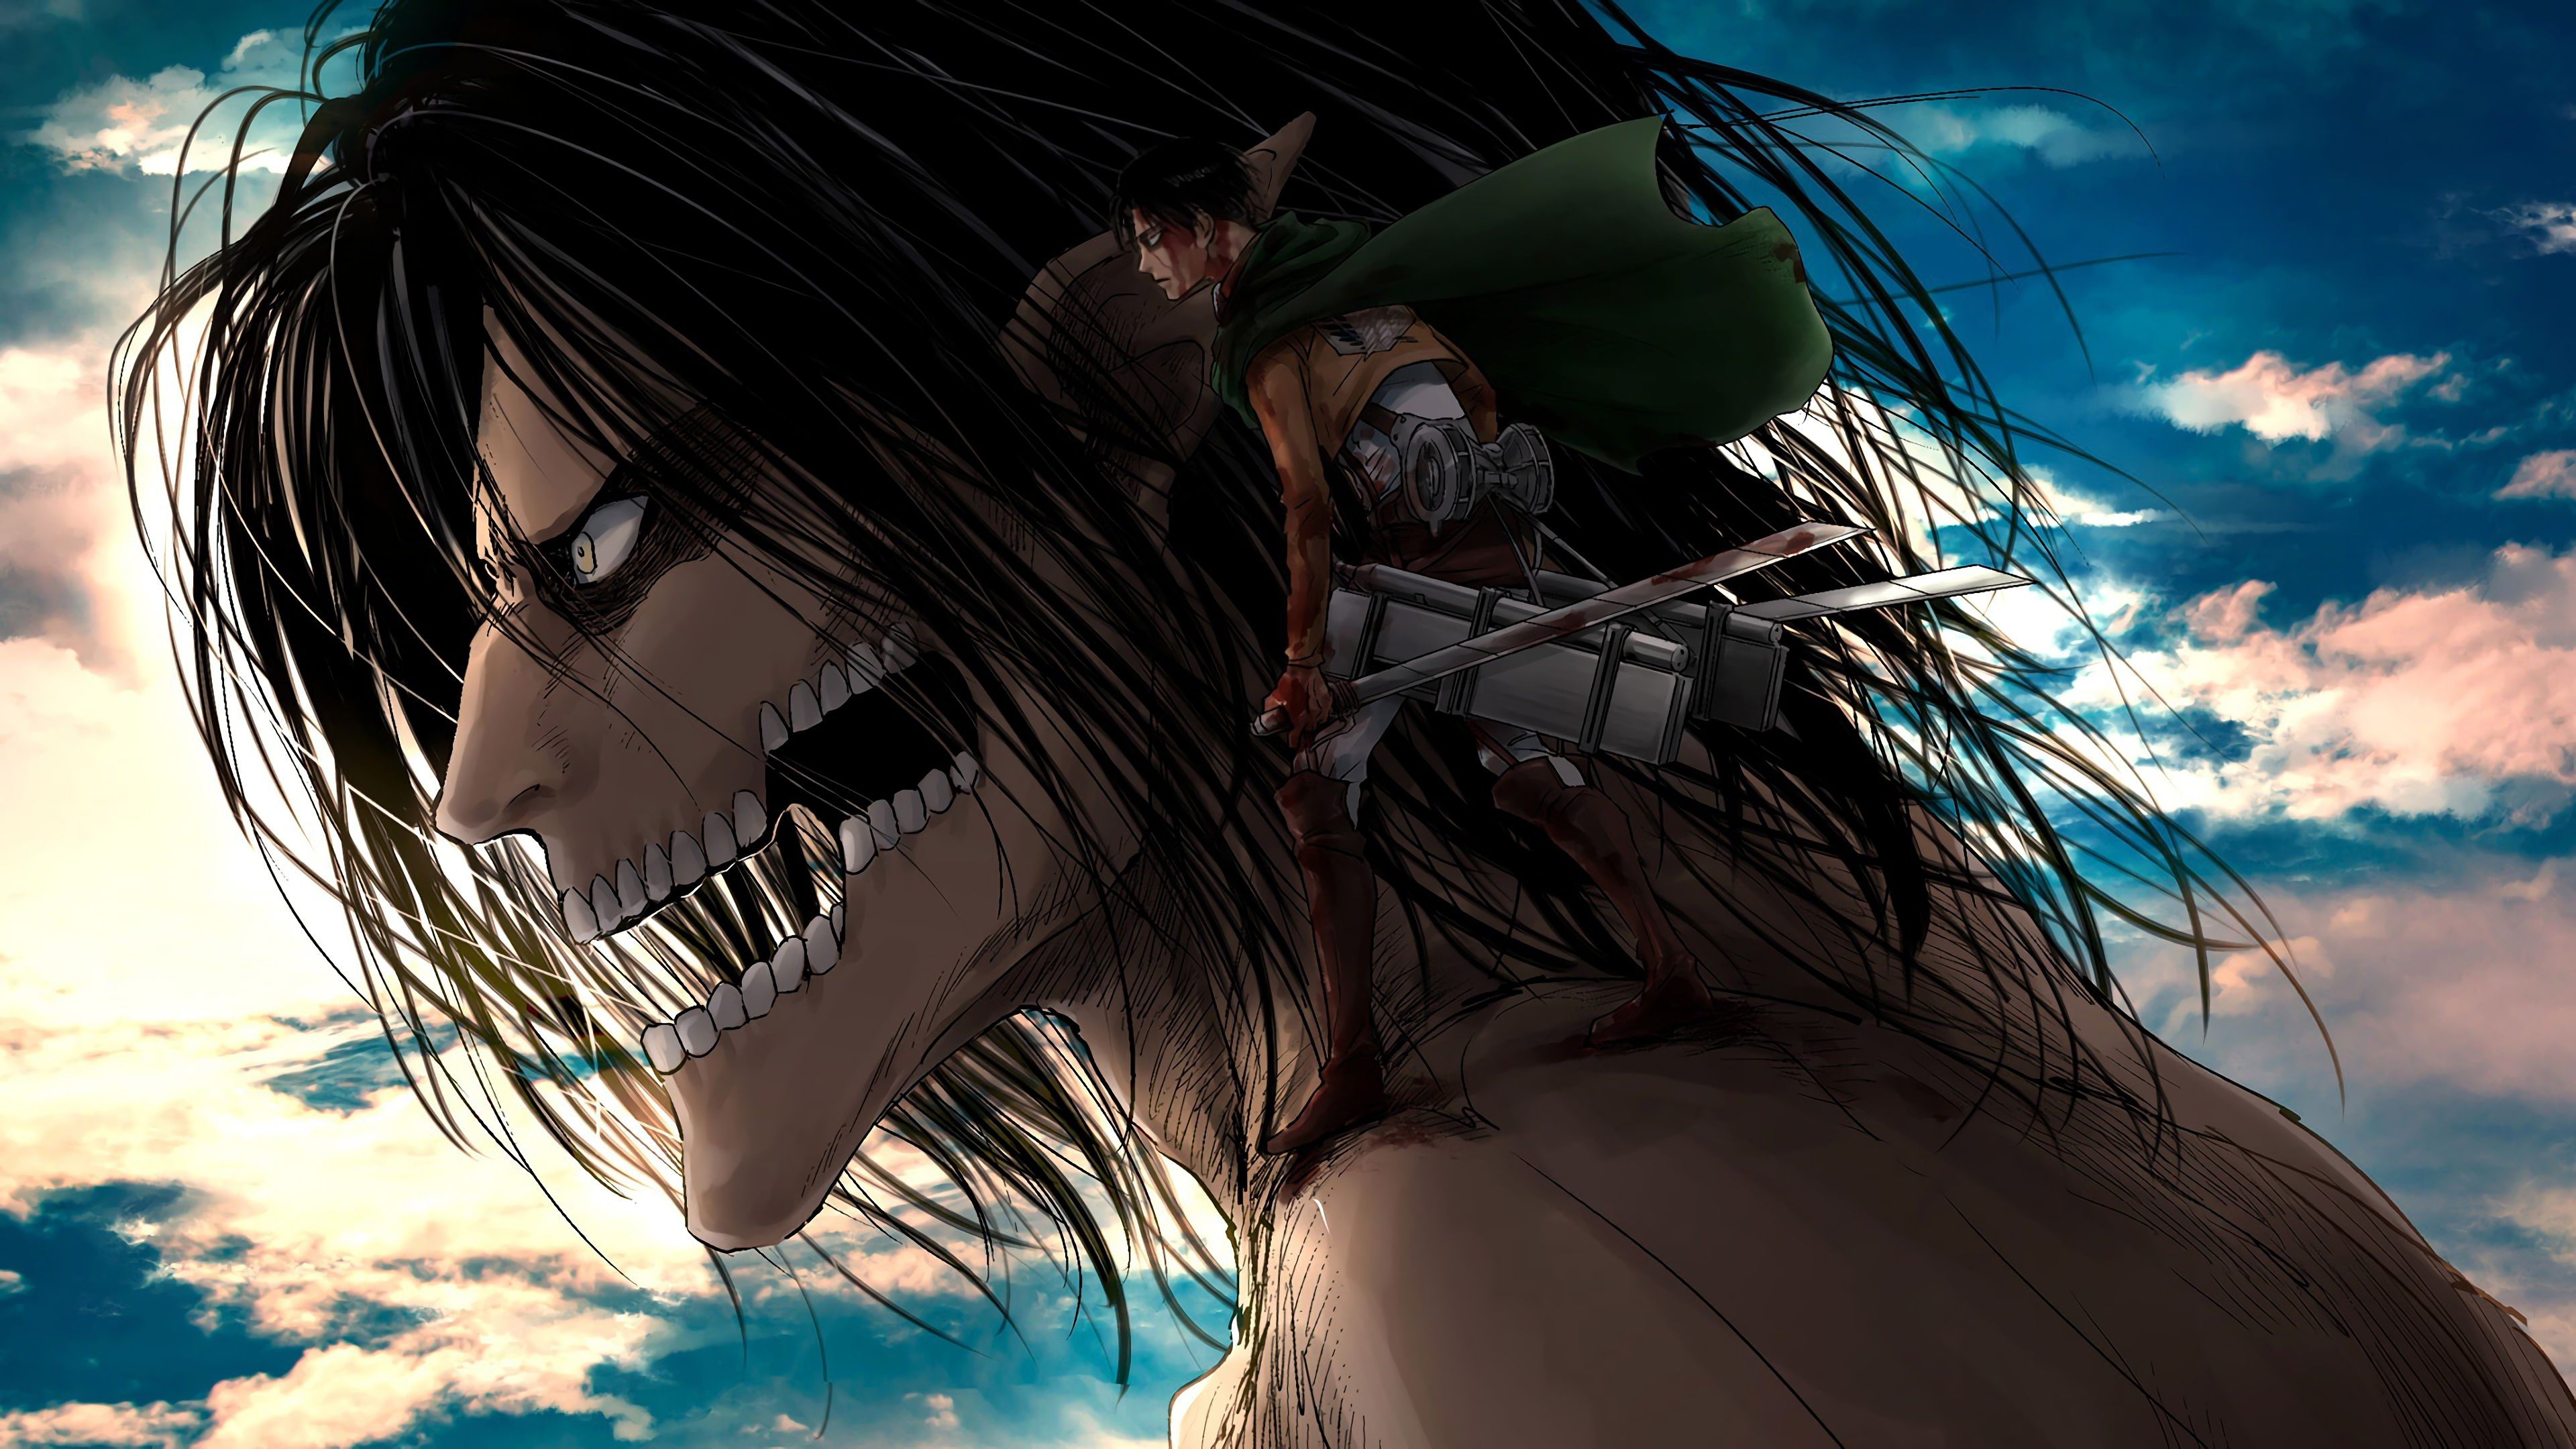 Advertisement platforms categories 1.0 user rating4 1/4 attack on titan 2 is an rpg available on windows that further unfolds the story from the original. Attack On Titan Anime 4k PC Wallpapers - Wallpaper Cave